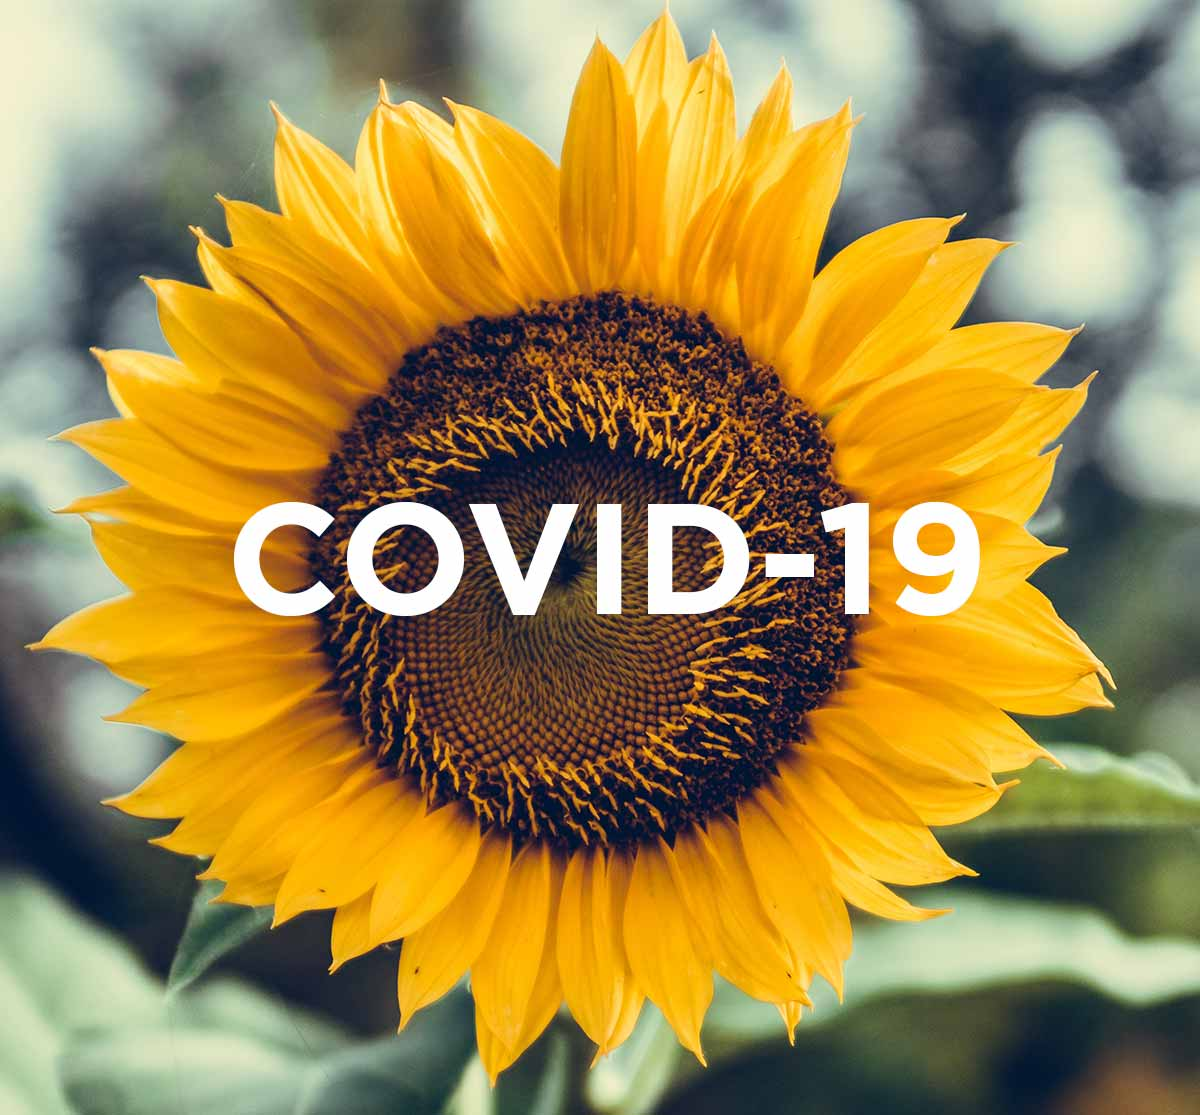 A sunflower with Covid-19 writing